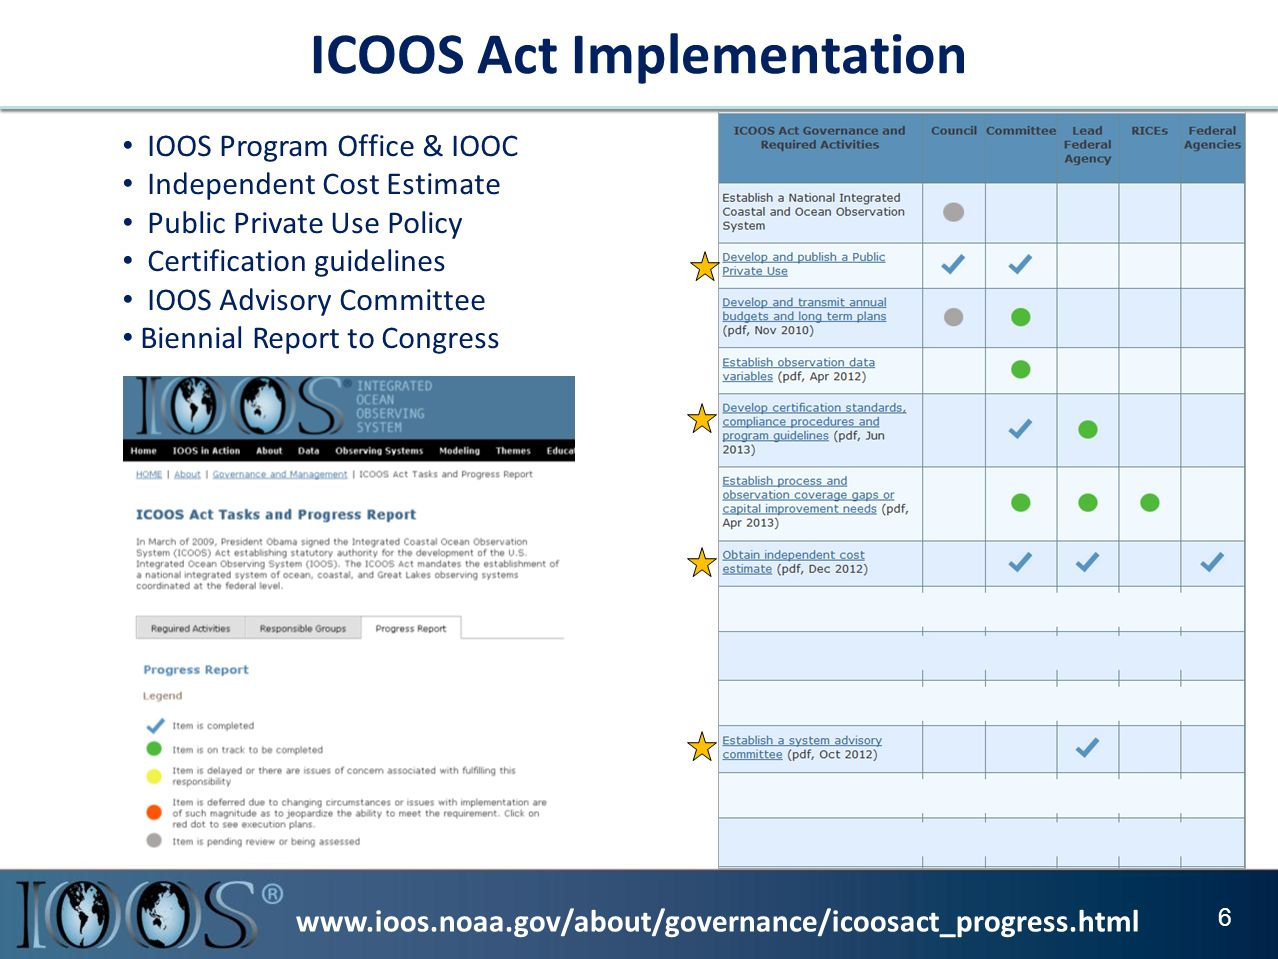 www.ioos.noaa.gov/about/governance/icoosact_progress.html ICOOS Act Implementation 6 IOOS Program Office & IOOC Independent Cost Estimate Public Private Use Policy Certification guidelines IOOS Advisory Committee Biennial Report to Congress